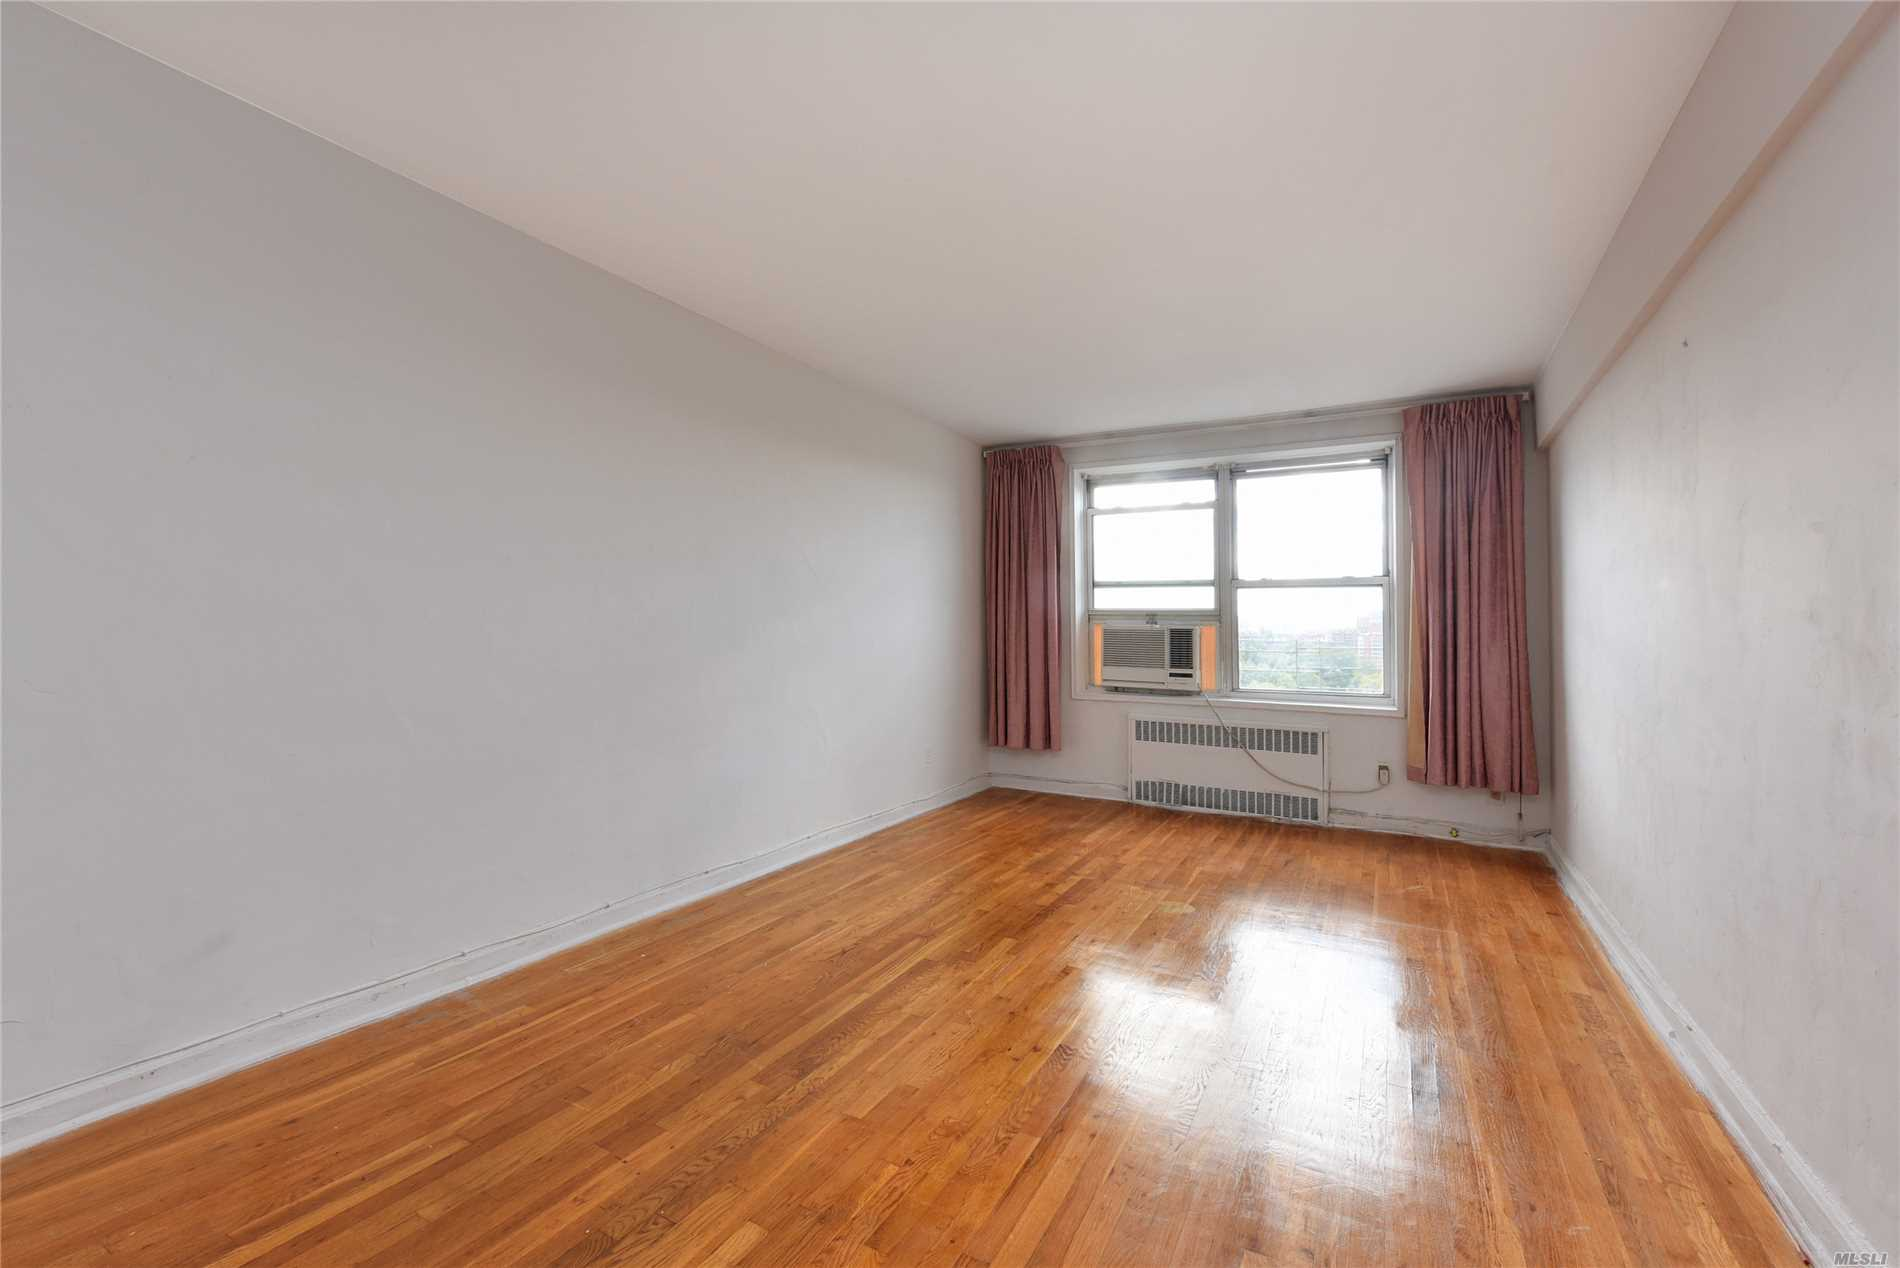 Largest One Bedroom Corner Coop Unit On Prime North Flushing Area, Top Floor With South Exposure , Real 800Sf Living Space , All Window In Kitchen And Bathroom, Low Maintenance Including All , Move In Condition With Hardwood Flooring Throughout, Fresh Painted Whole Apartment, Lot Of Closets, Formal Dinning Area , Entry Foyer,  Multi-Lines Of Bus Steps Away From The Building, Best Layout In The Building, Close To All Supermarket , Shopping Center, Major Highway , School, Post Office, Library...